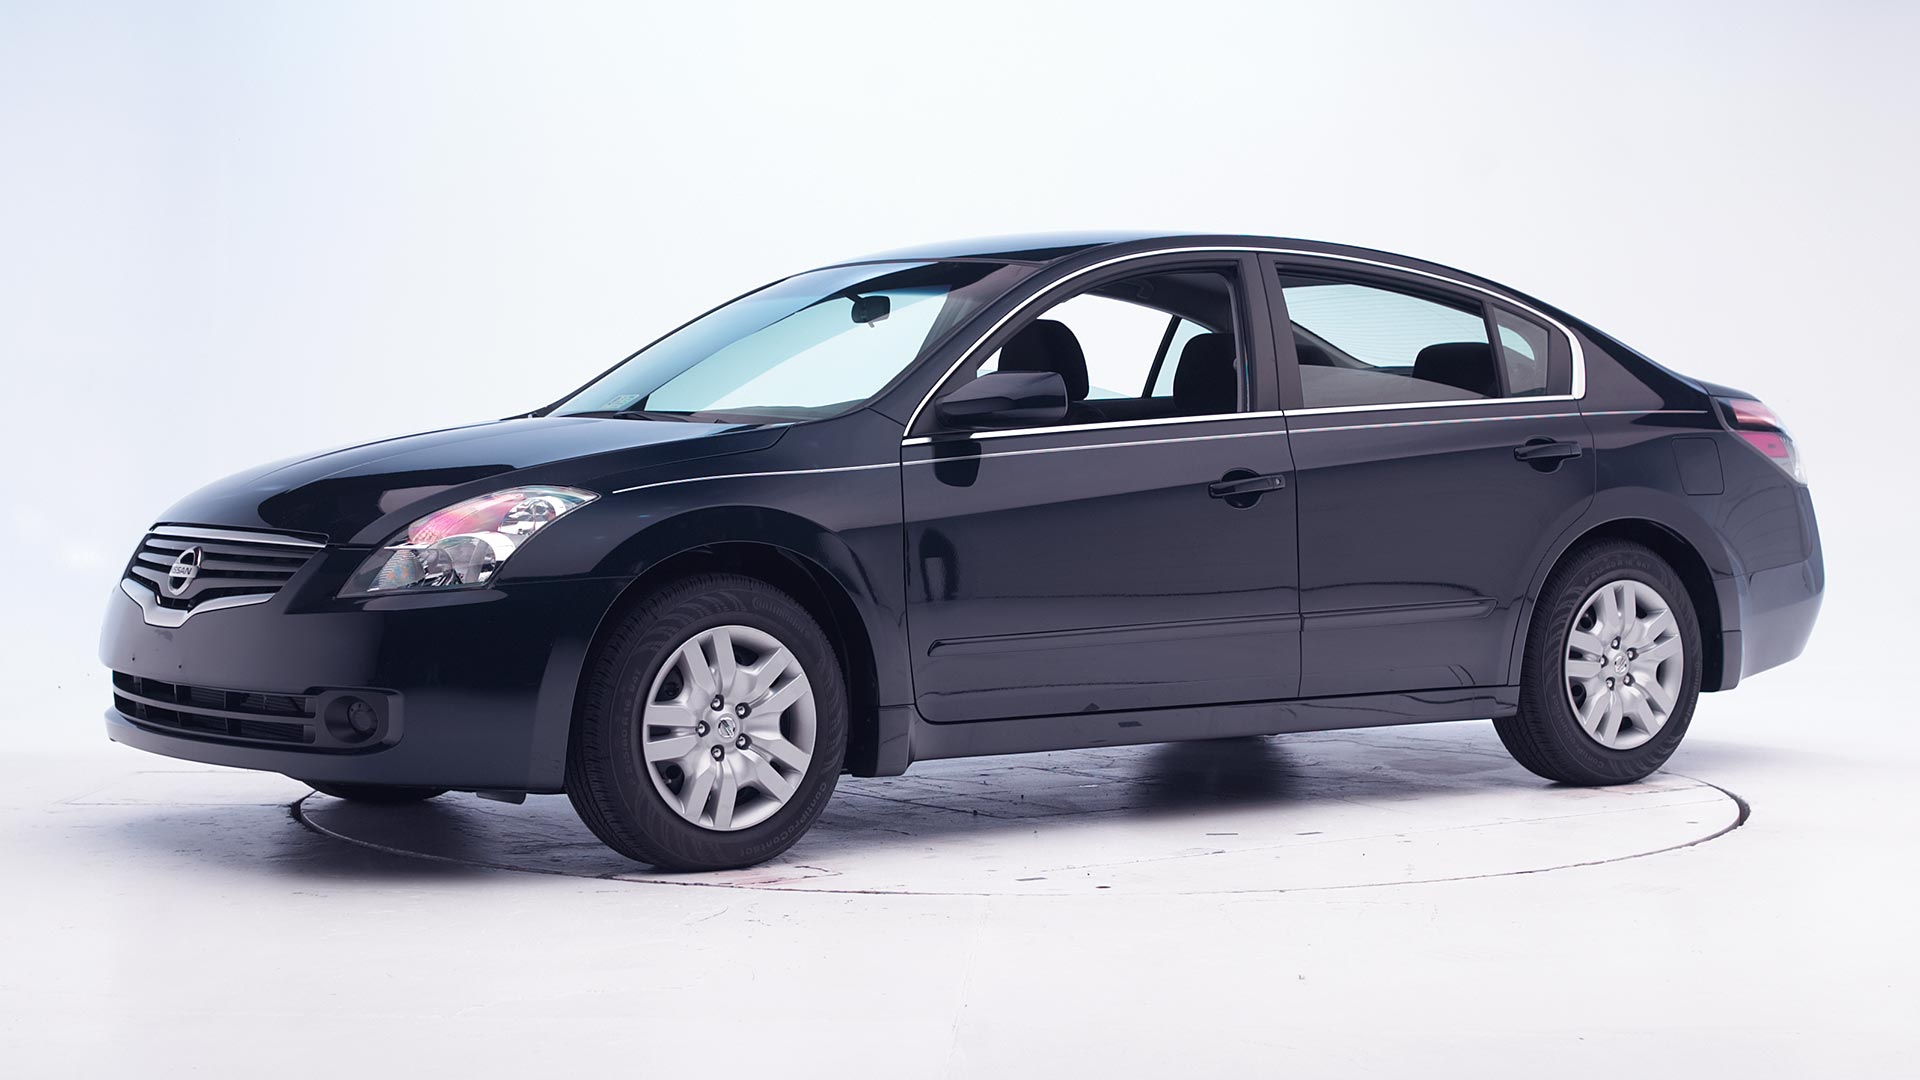 2010 Nissan Altima 4-door sedan